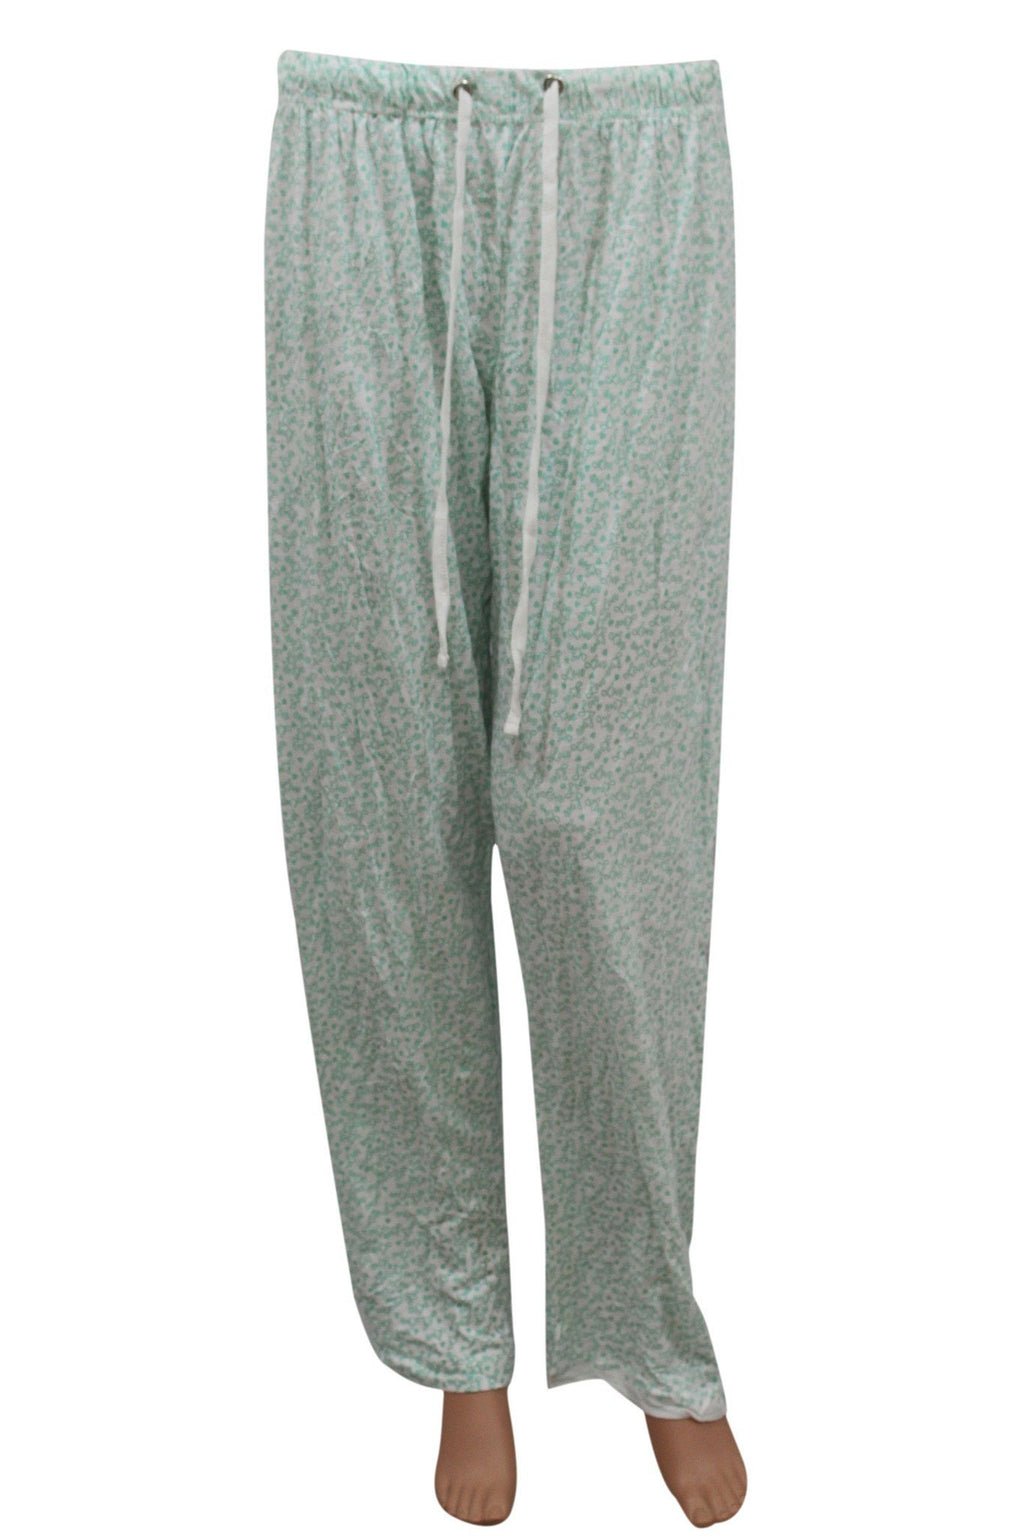 Ladies Trouser (LTU-0007)